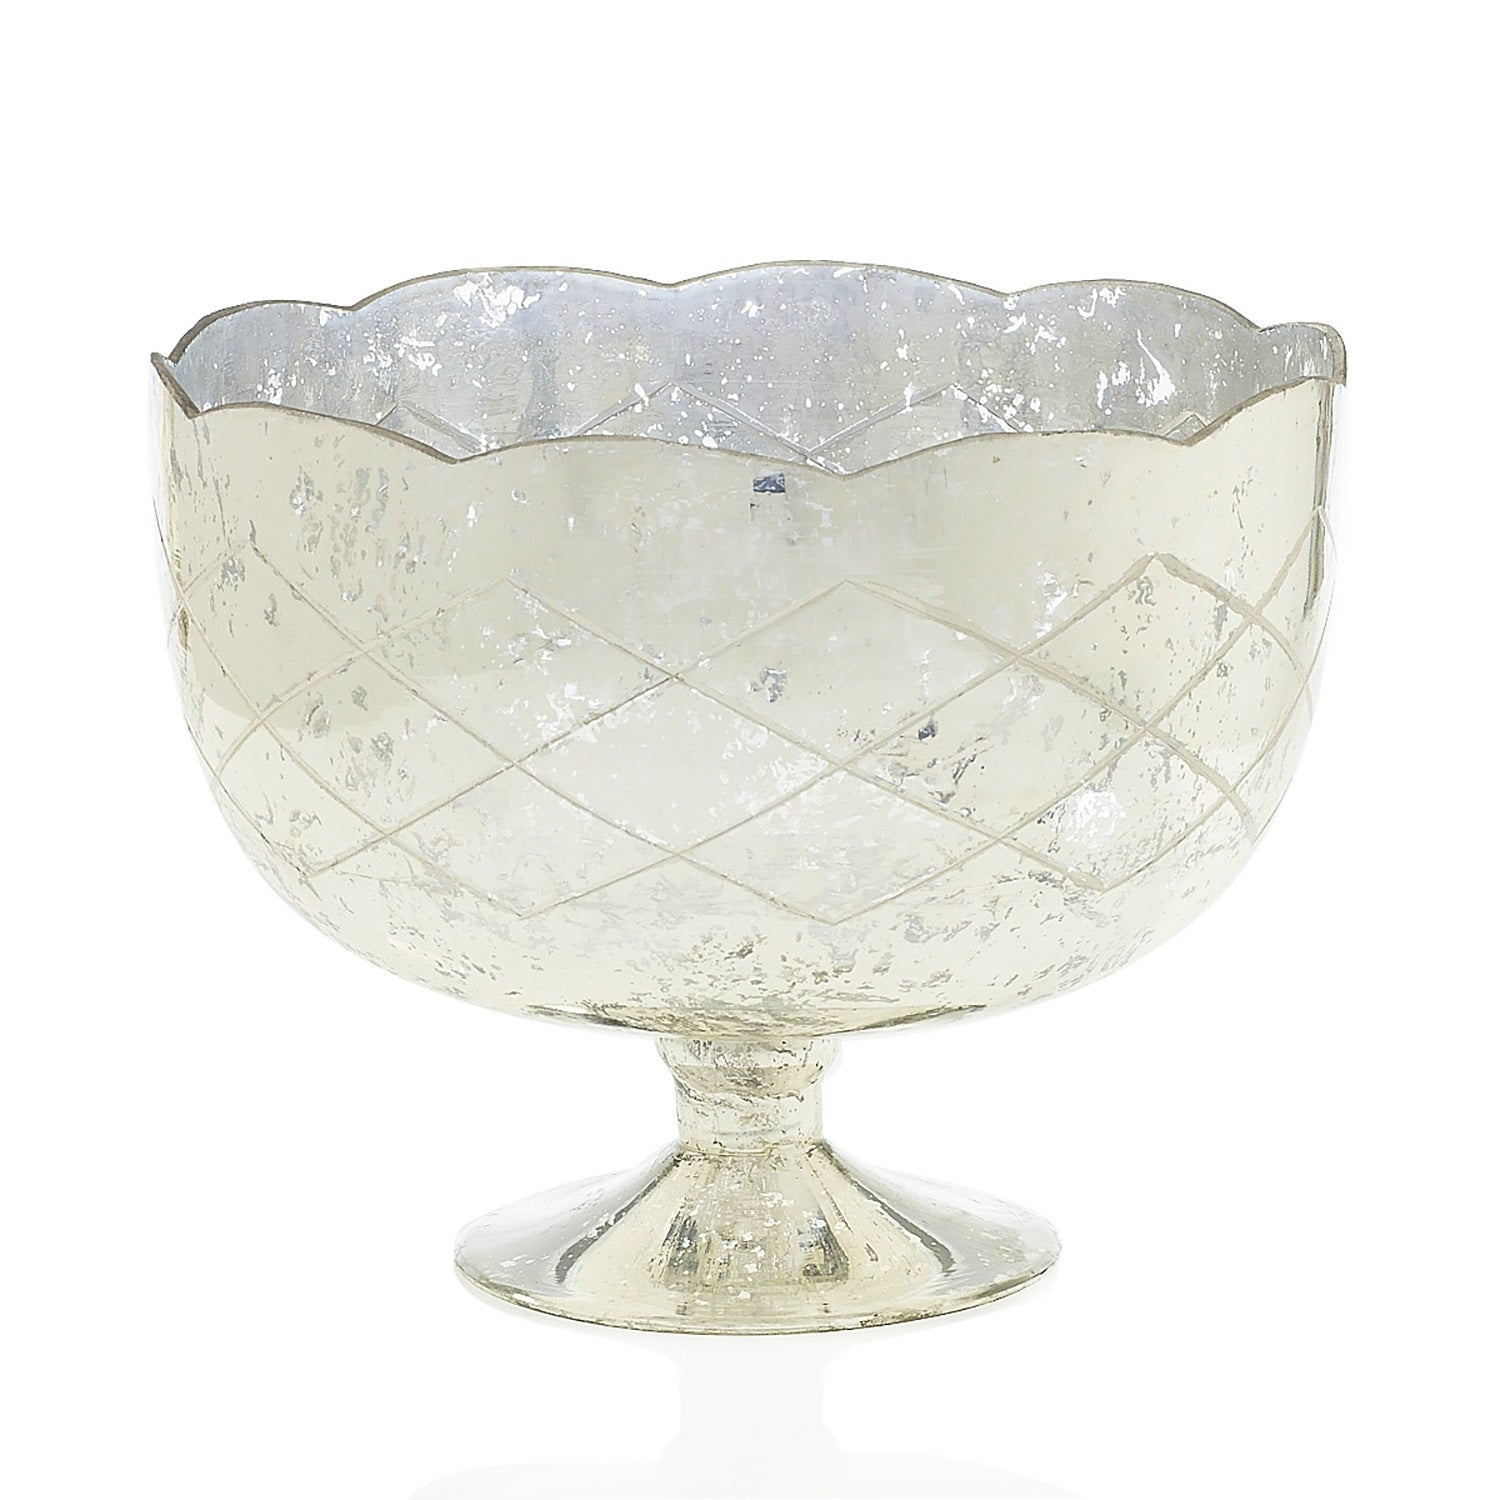 The Scalloped Pedestal Bowl, Large